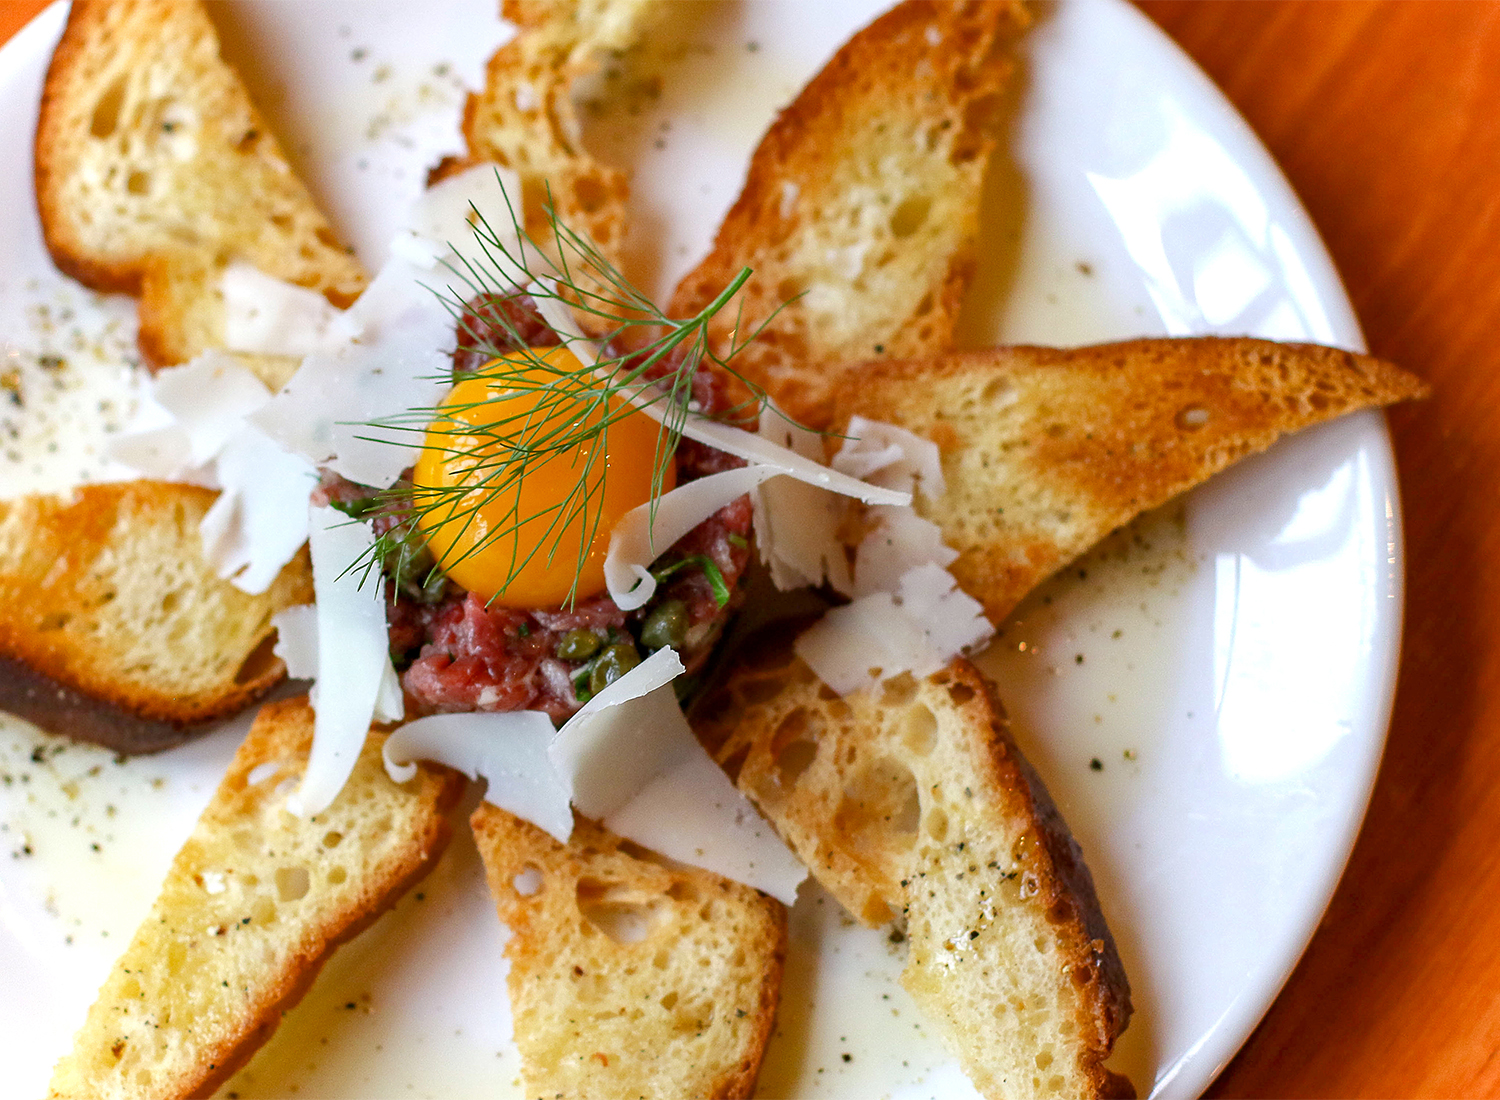 Steak tartare at Salt and Stone Restaurant in Sonoma County, Kenwood. Heather Irwin/PD